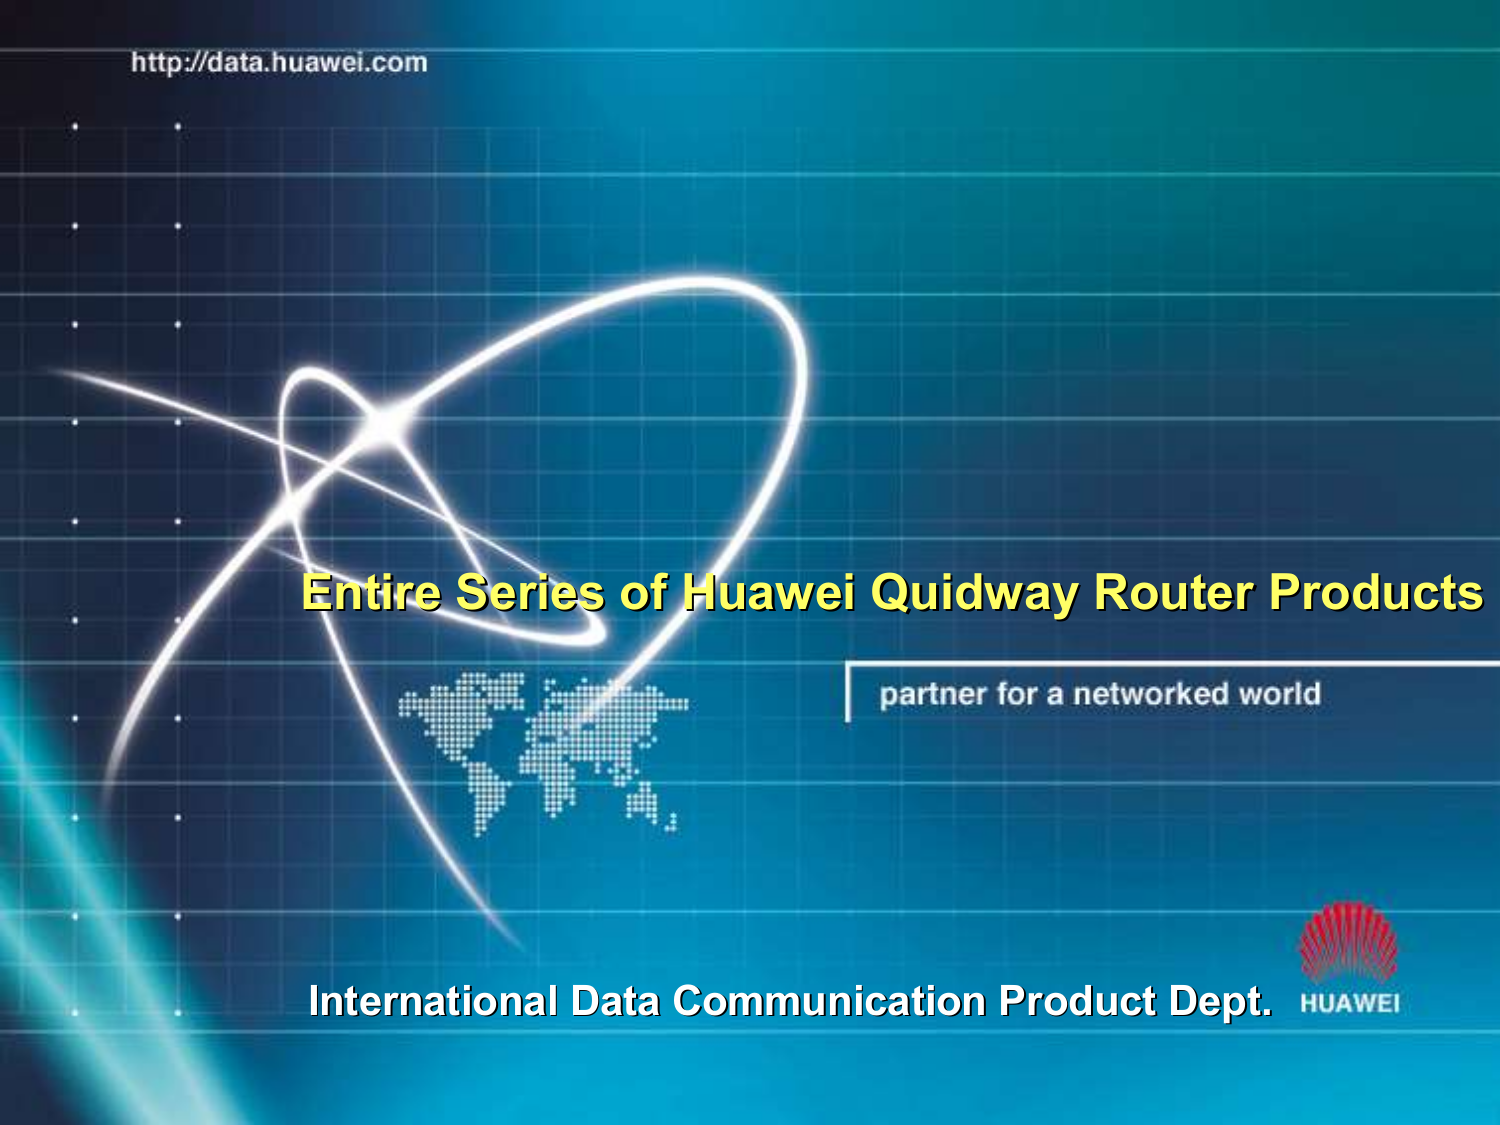 Download free pdf for Huawei Quidway S6506 Switch manual